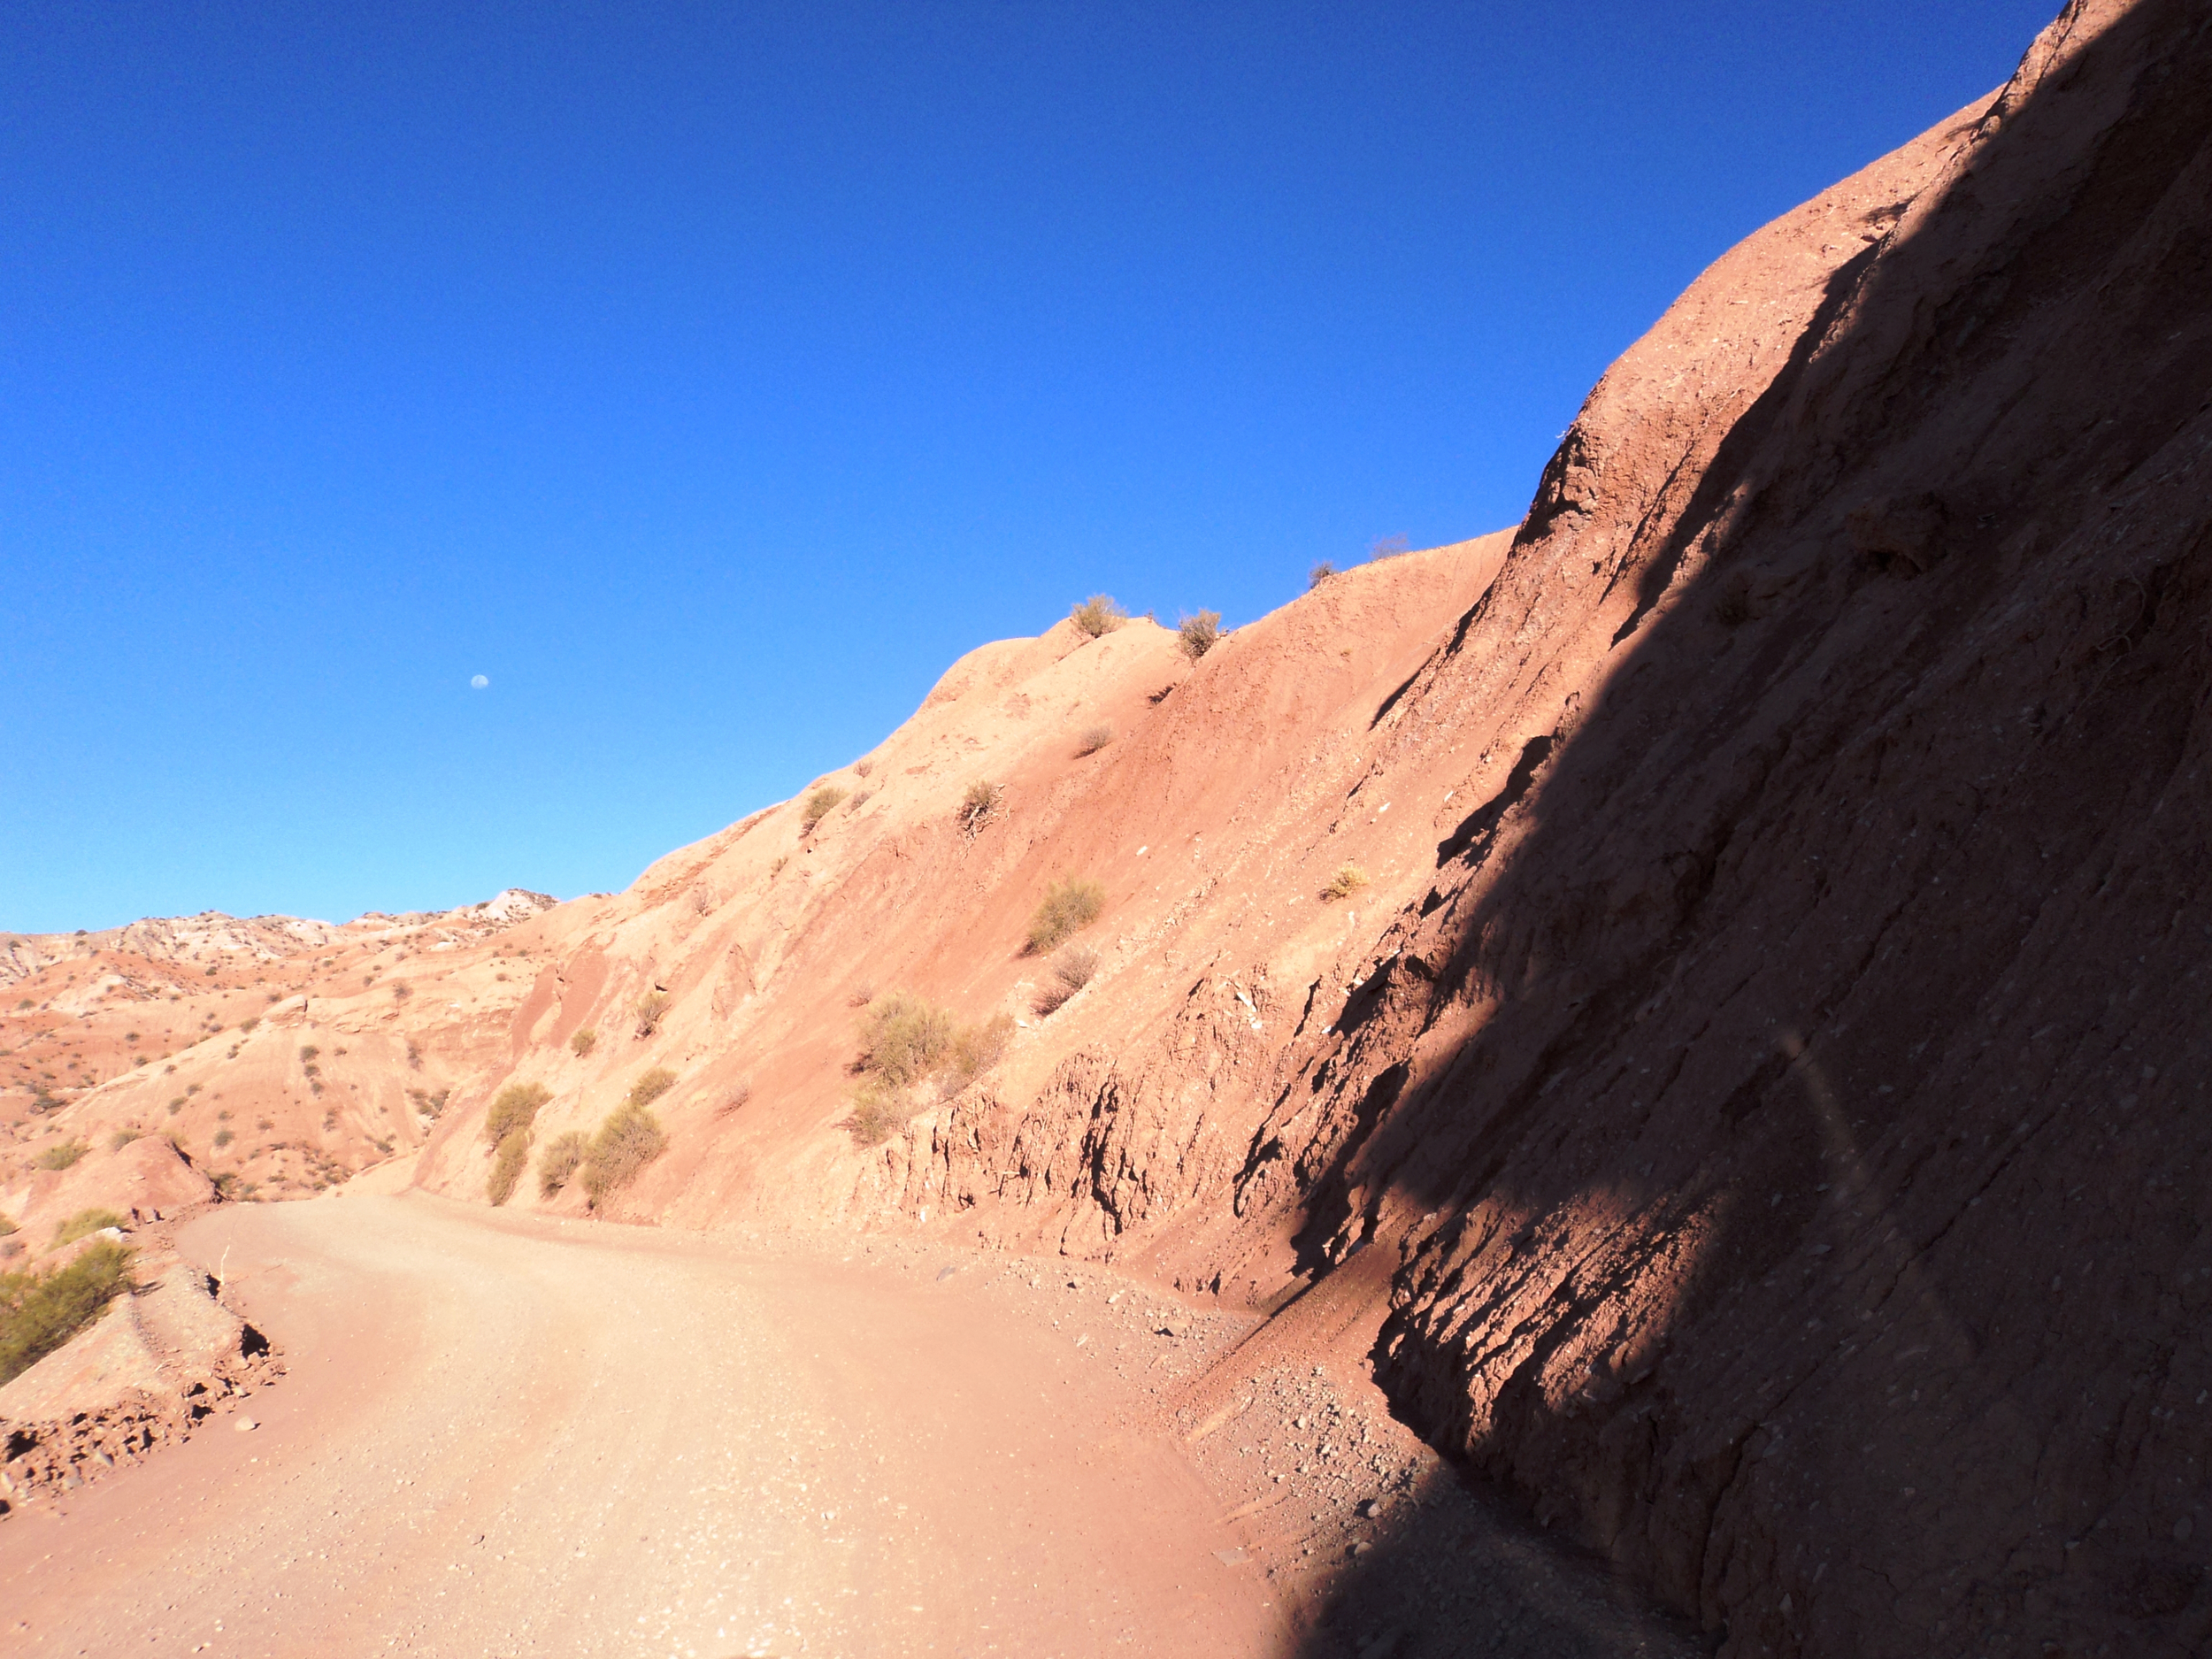 Mountain road outside of Cachi, Argentina (2500 m. elevation).